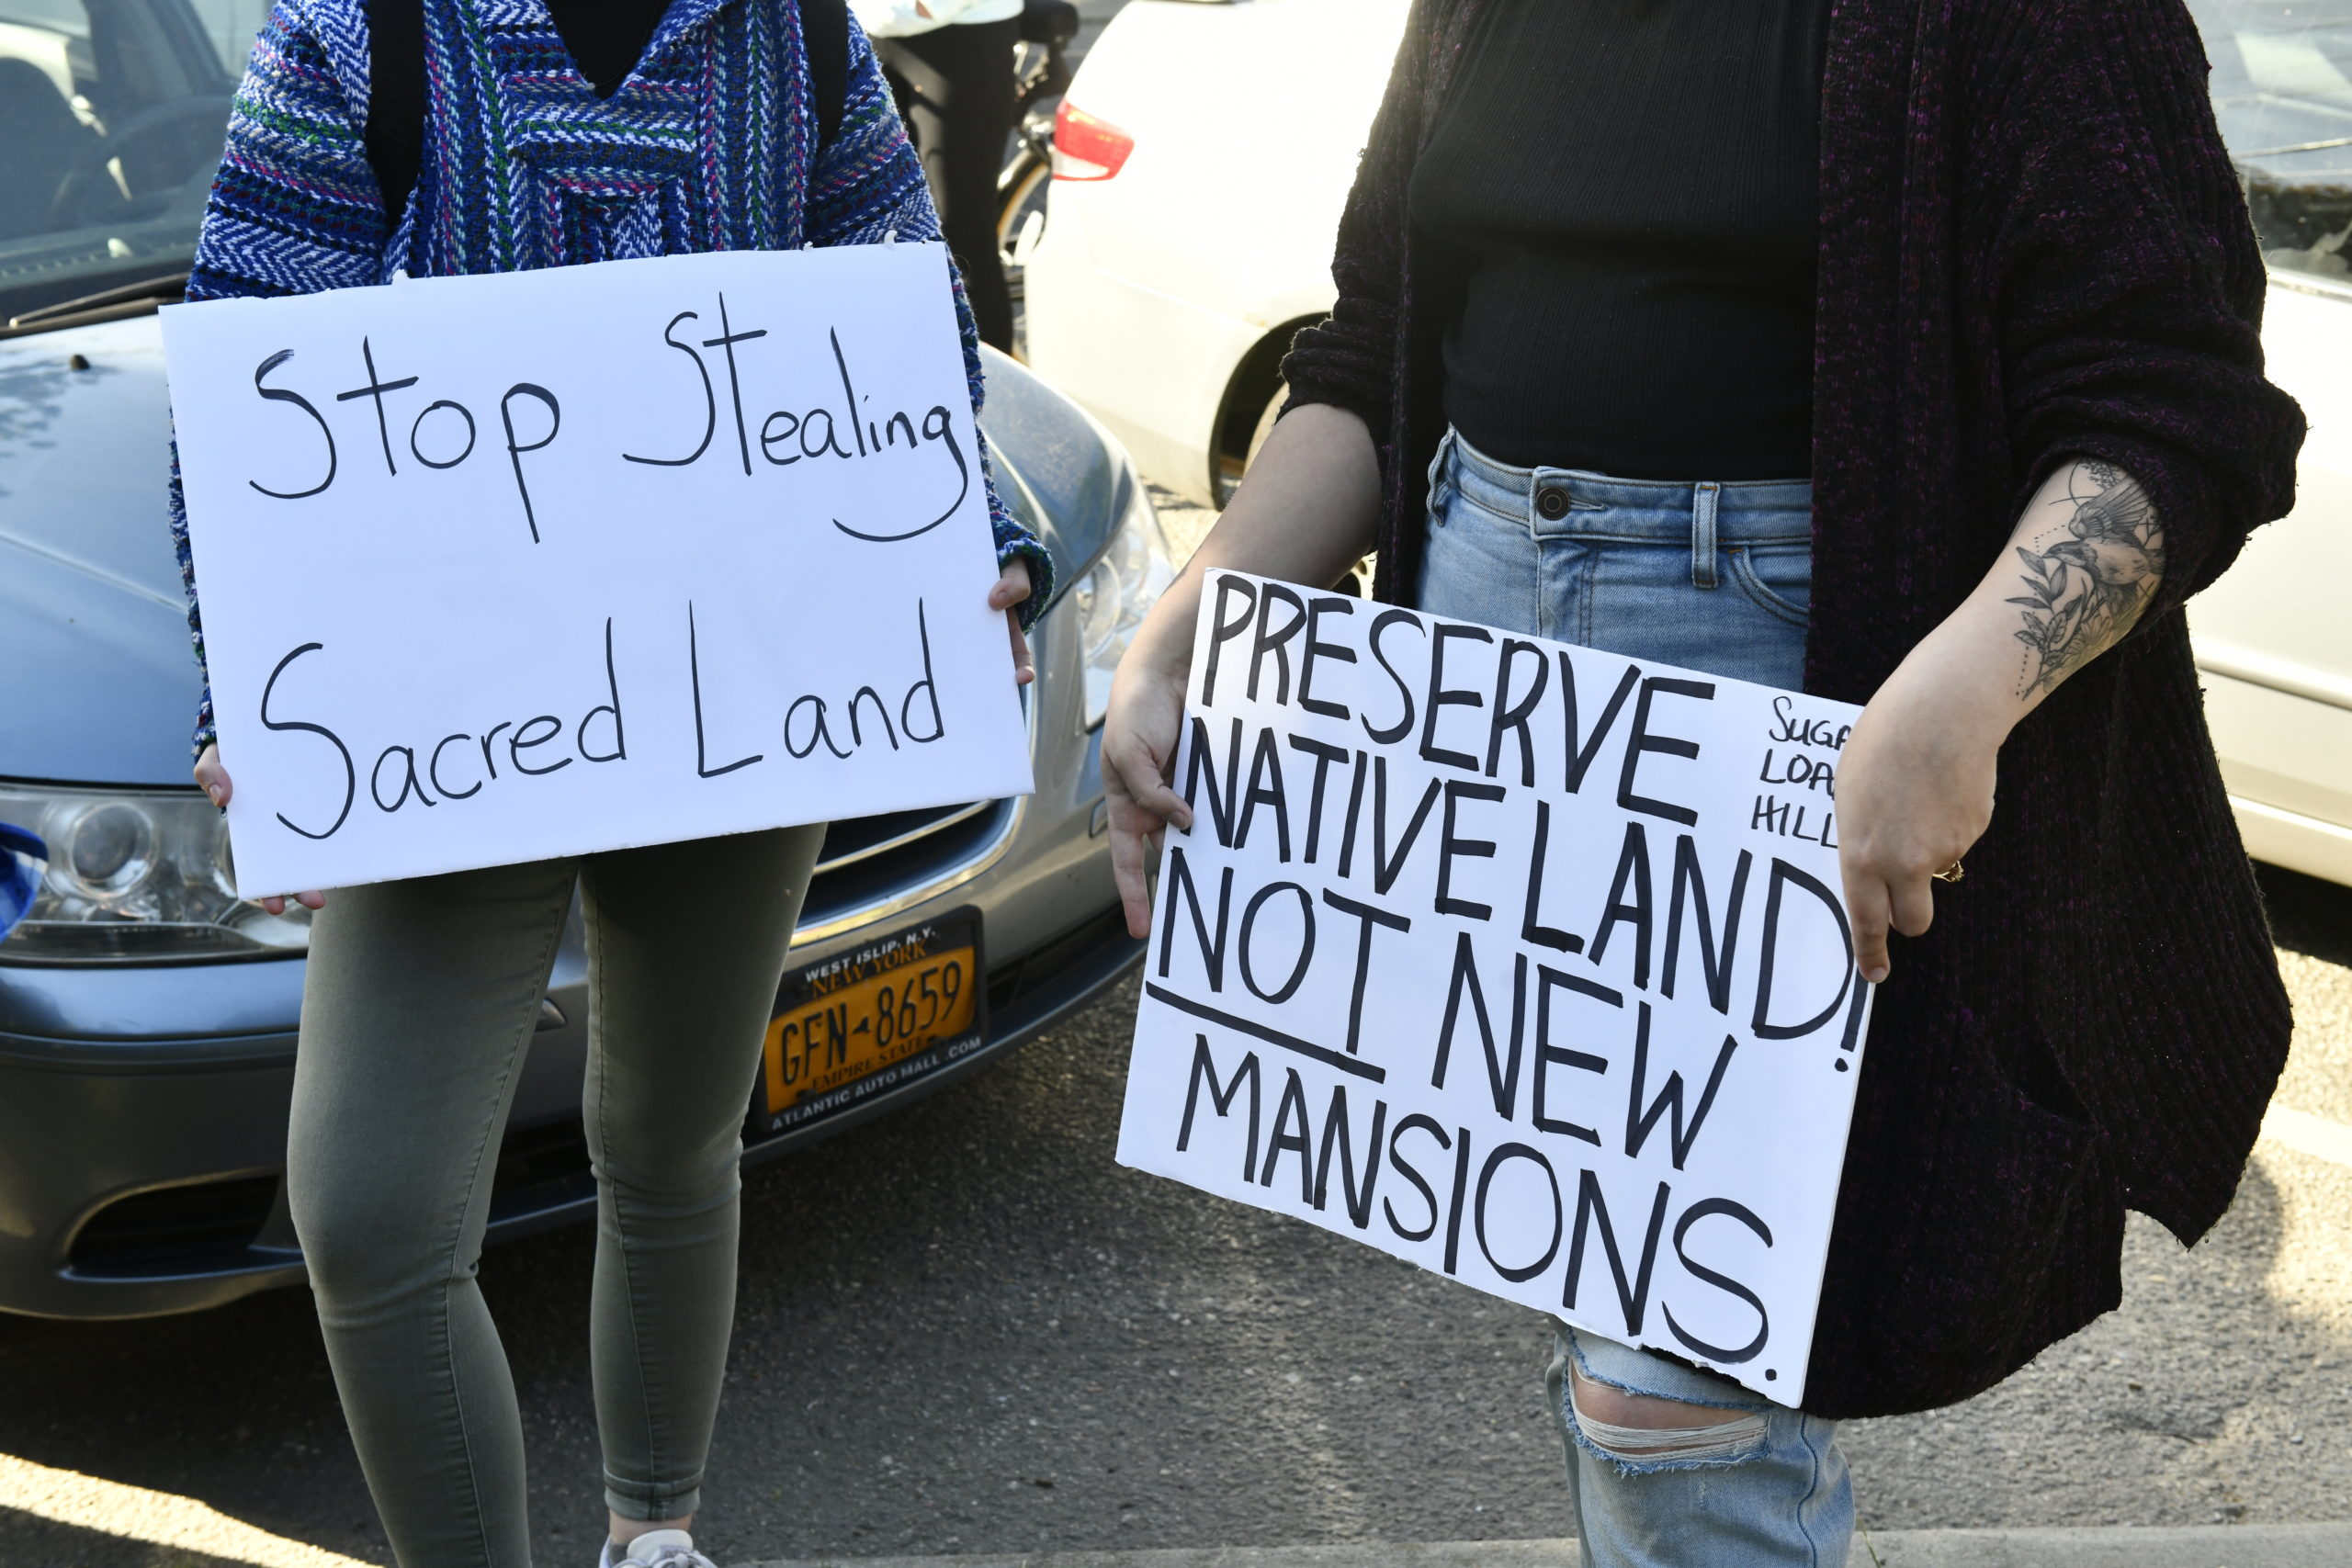 Supporters of the Shinnecock Nation displayed signs calling for the return of land to the tribe. DANA SHAW